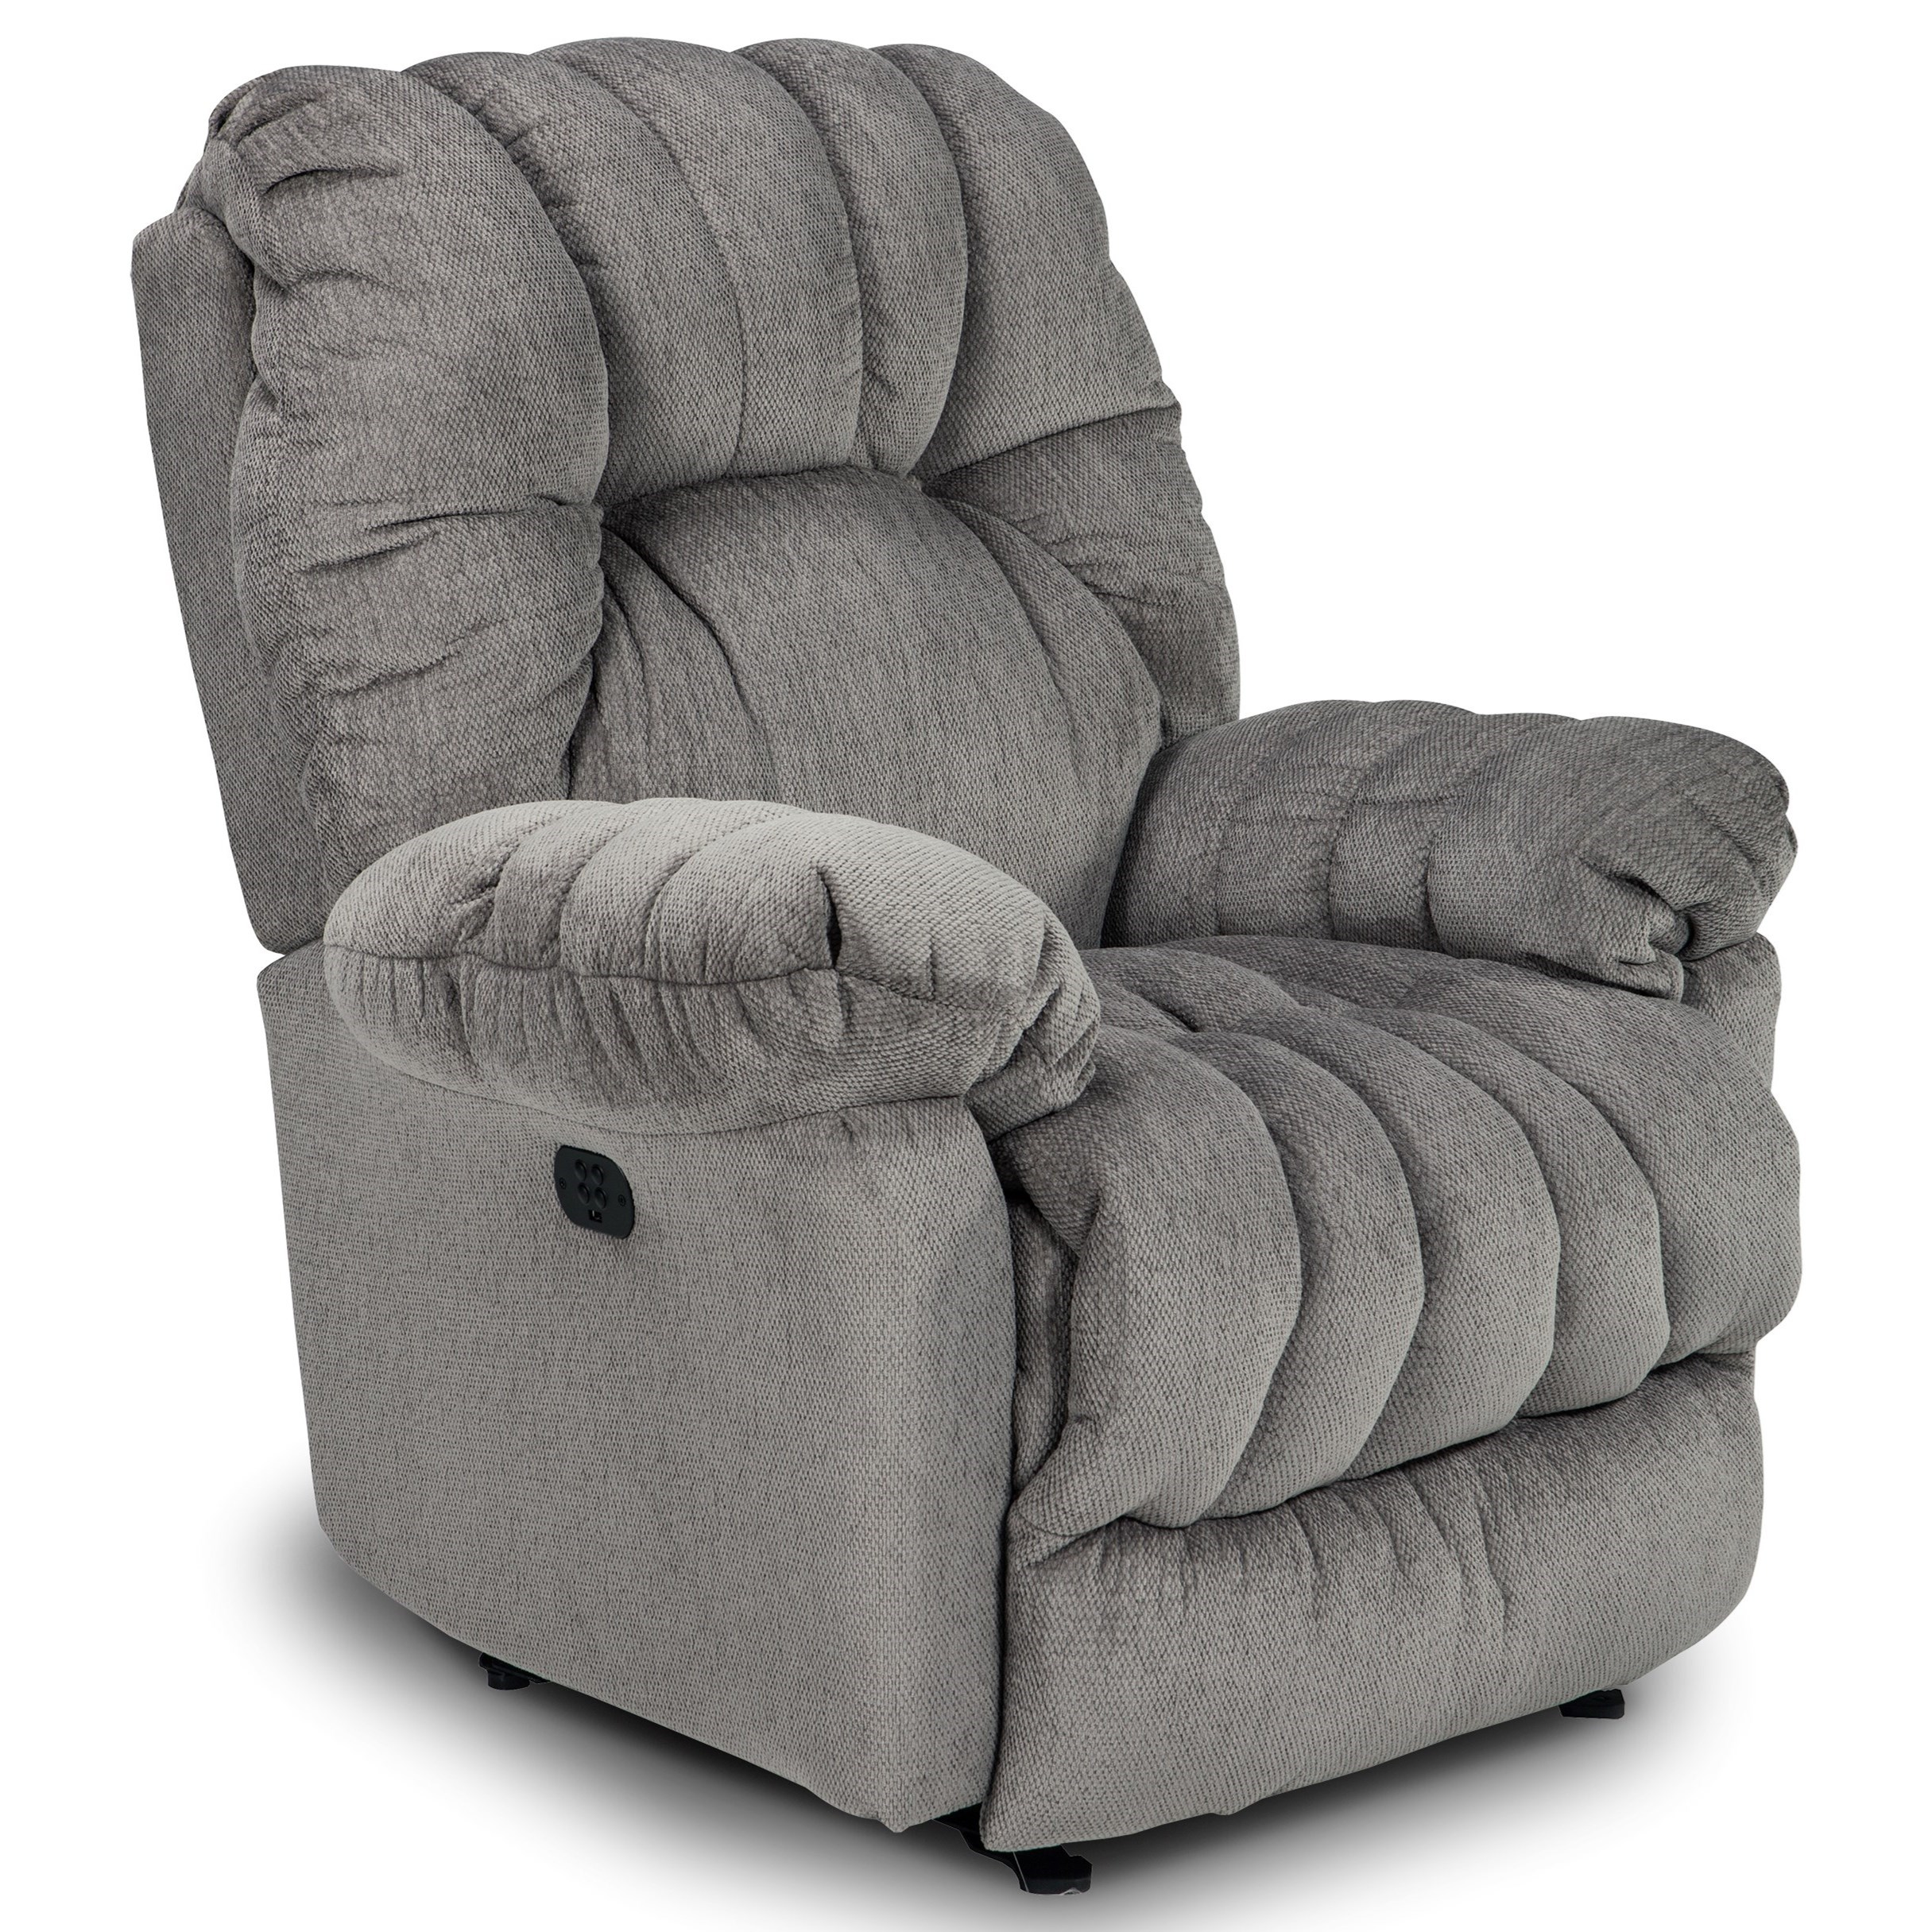 Conen Rocker Recliner by Best Home Furnishings at Novello Home Furnishings